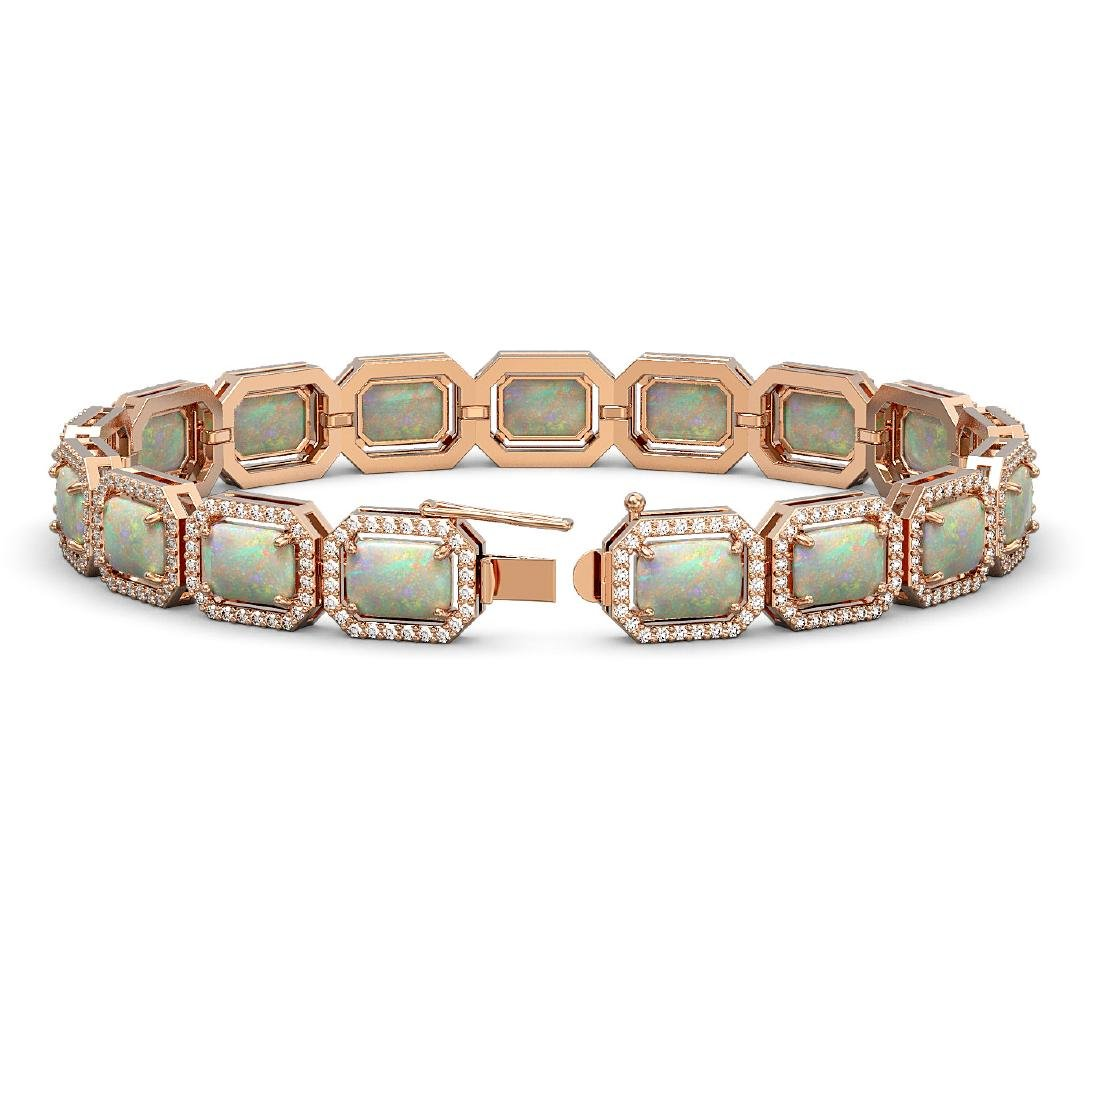 16.86 CTW Opal & Diamond Halo Bracelet 10K Rose Gold - 2